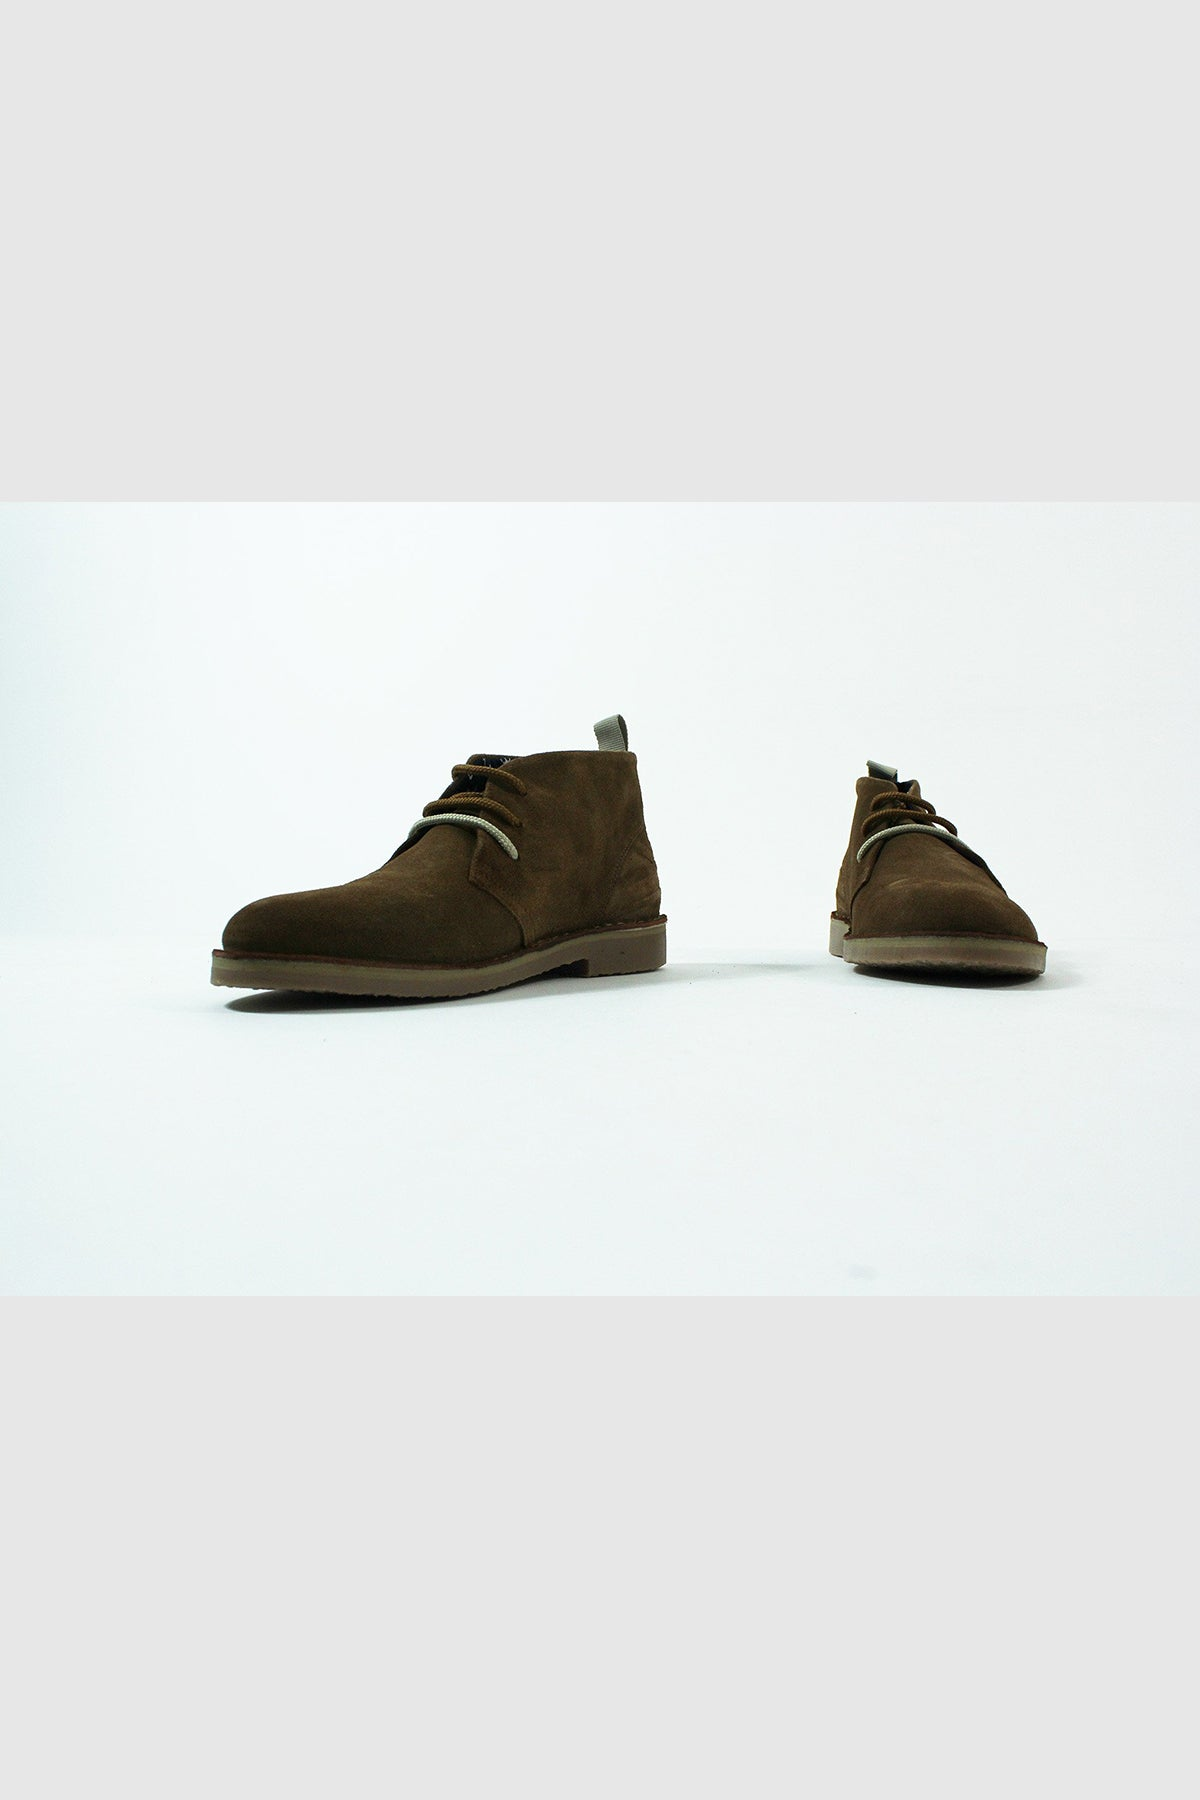 Submarine London - New Manchester Desert Boot (Date/ Earth)